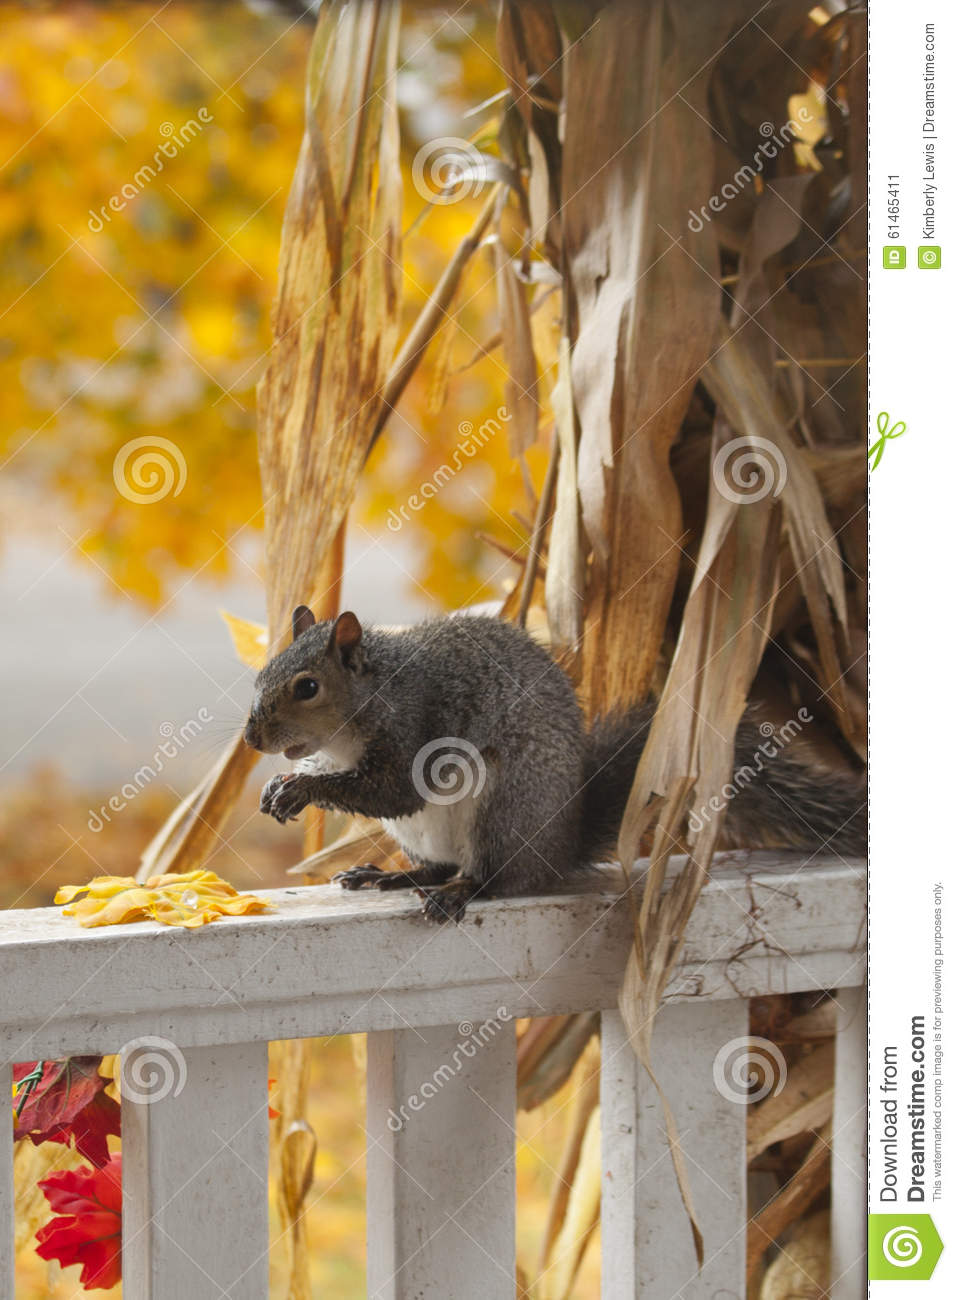 A Hungry Squirrel Eating The Corn From A Decorative Corn Stalk